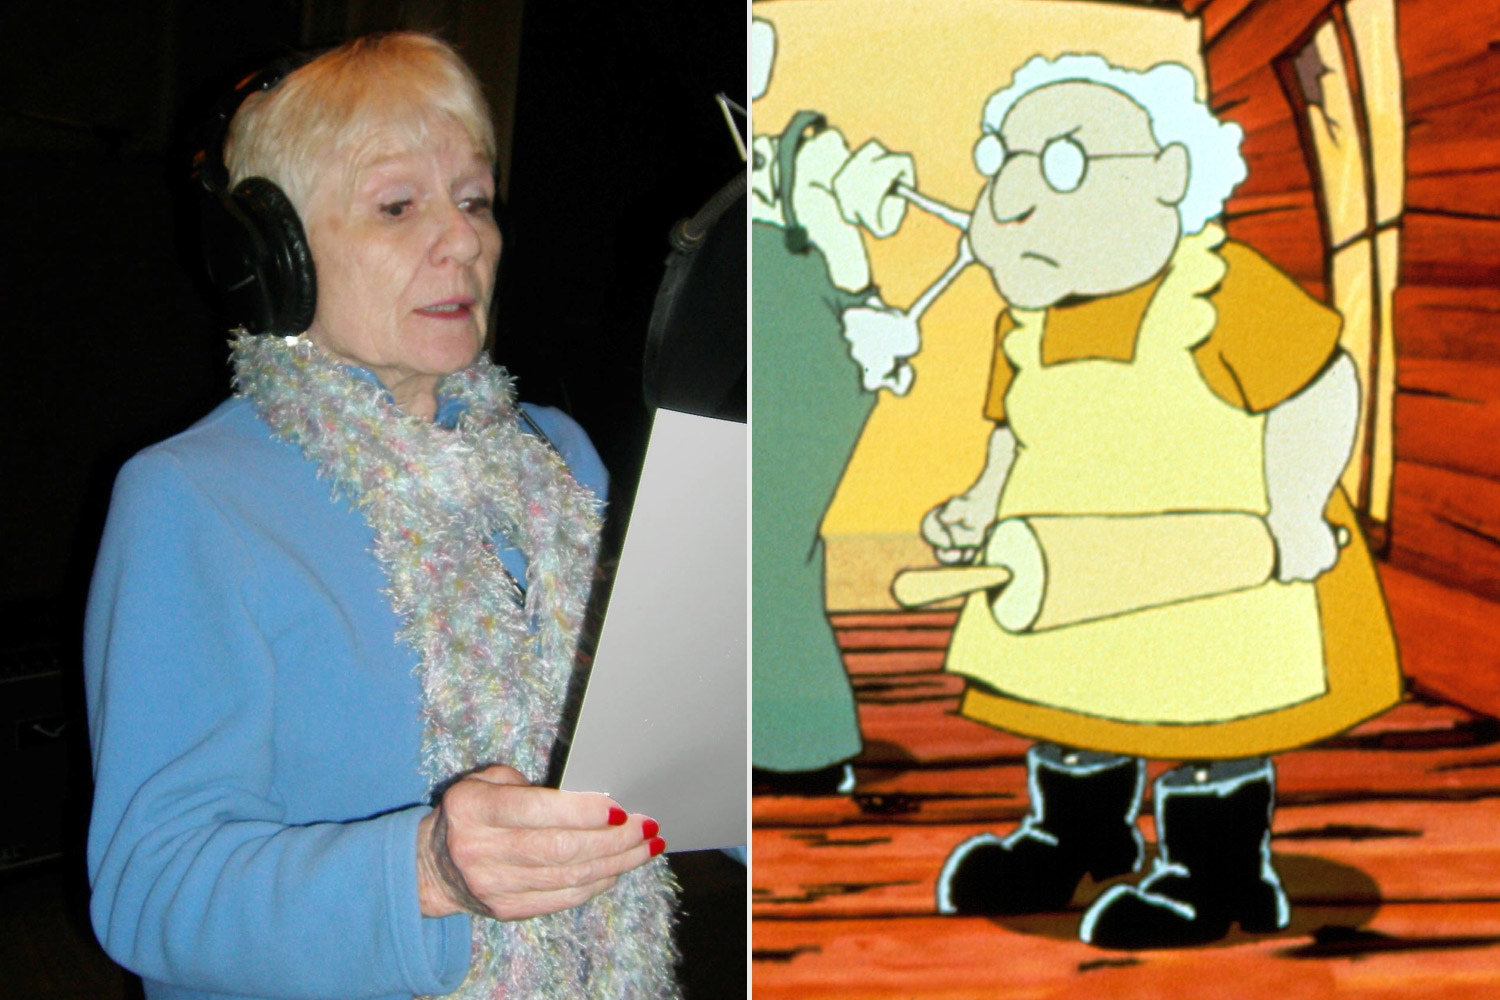 Thea White - COURAGE THE COWARDLY DOG